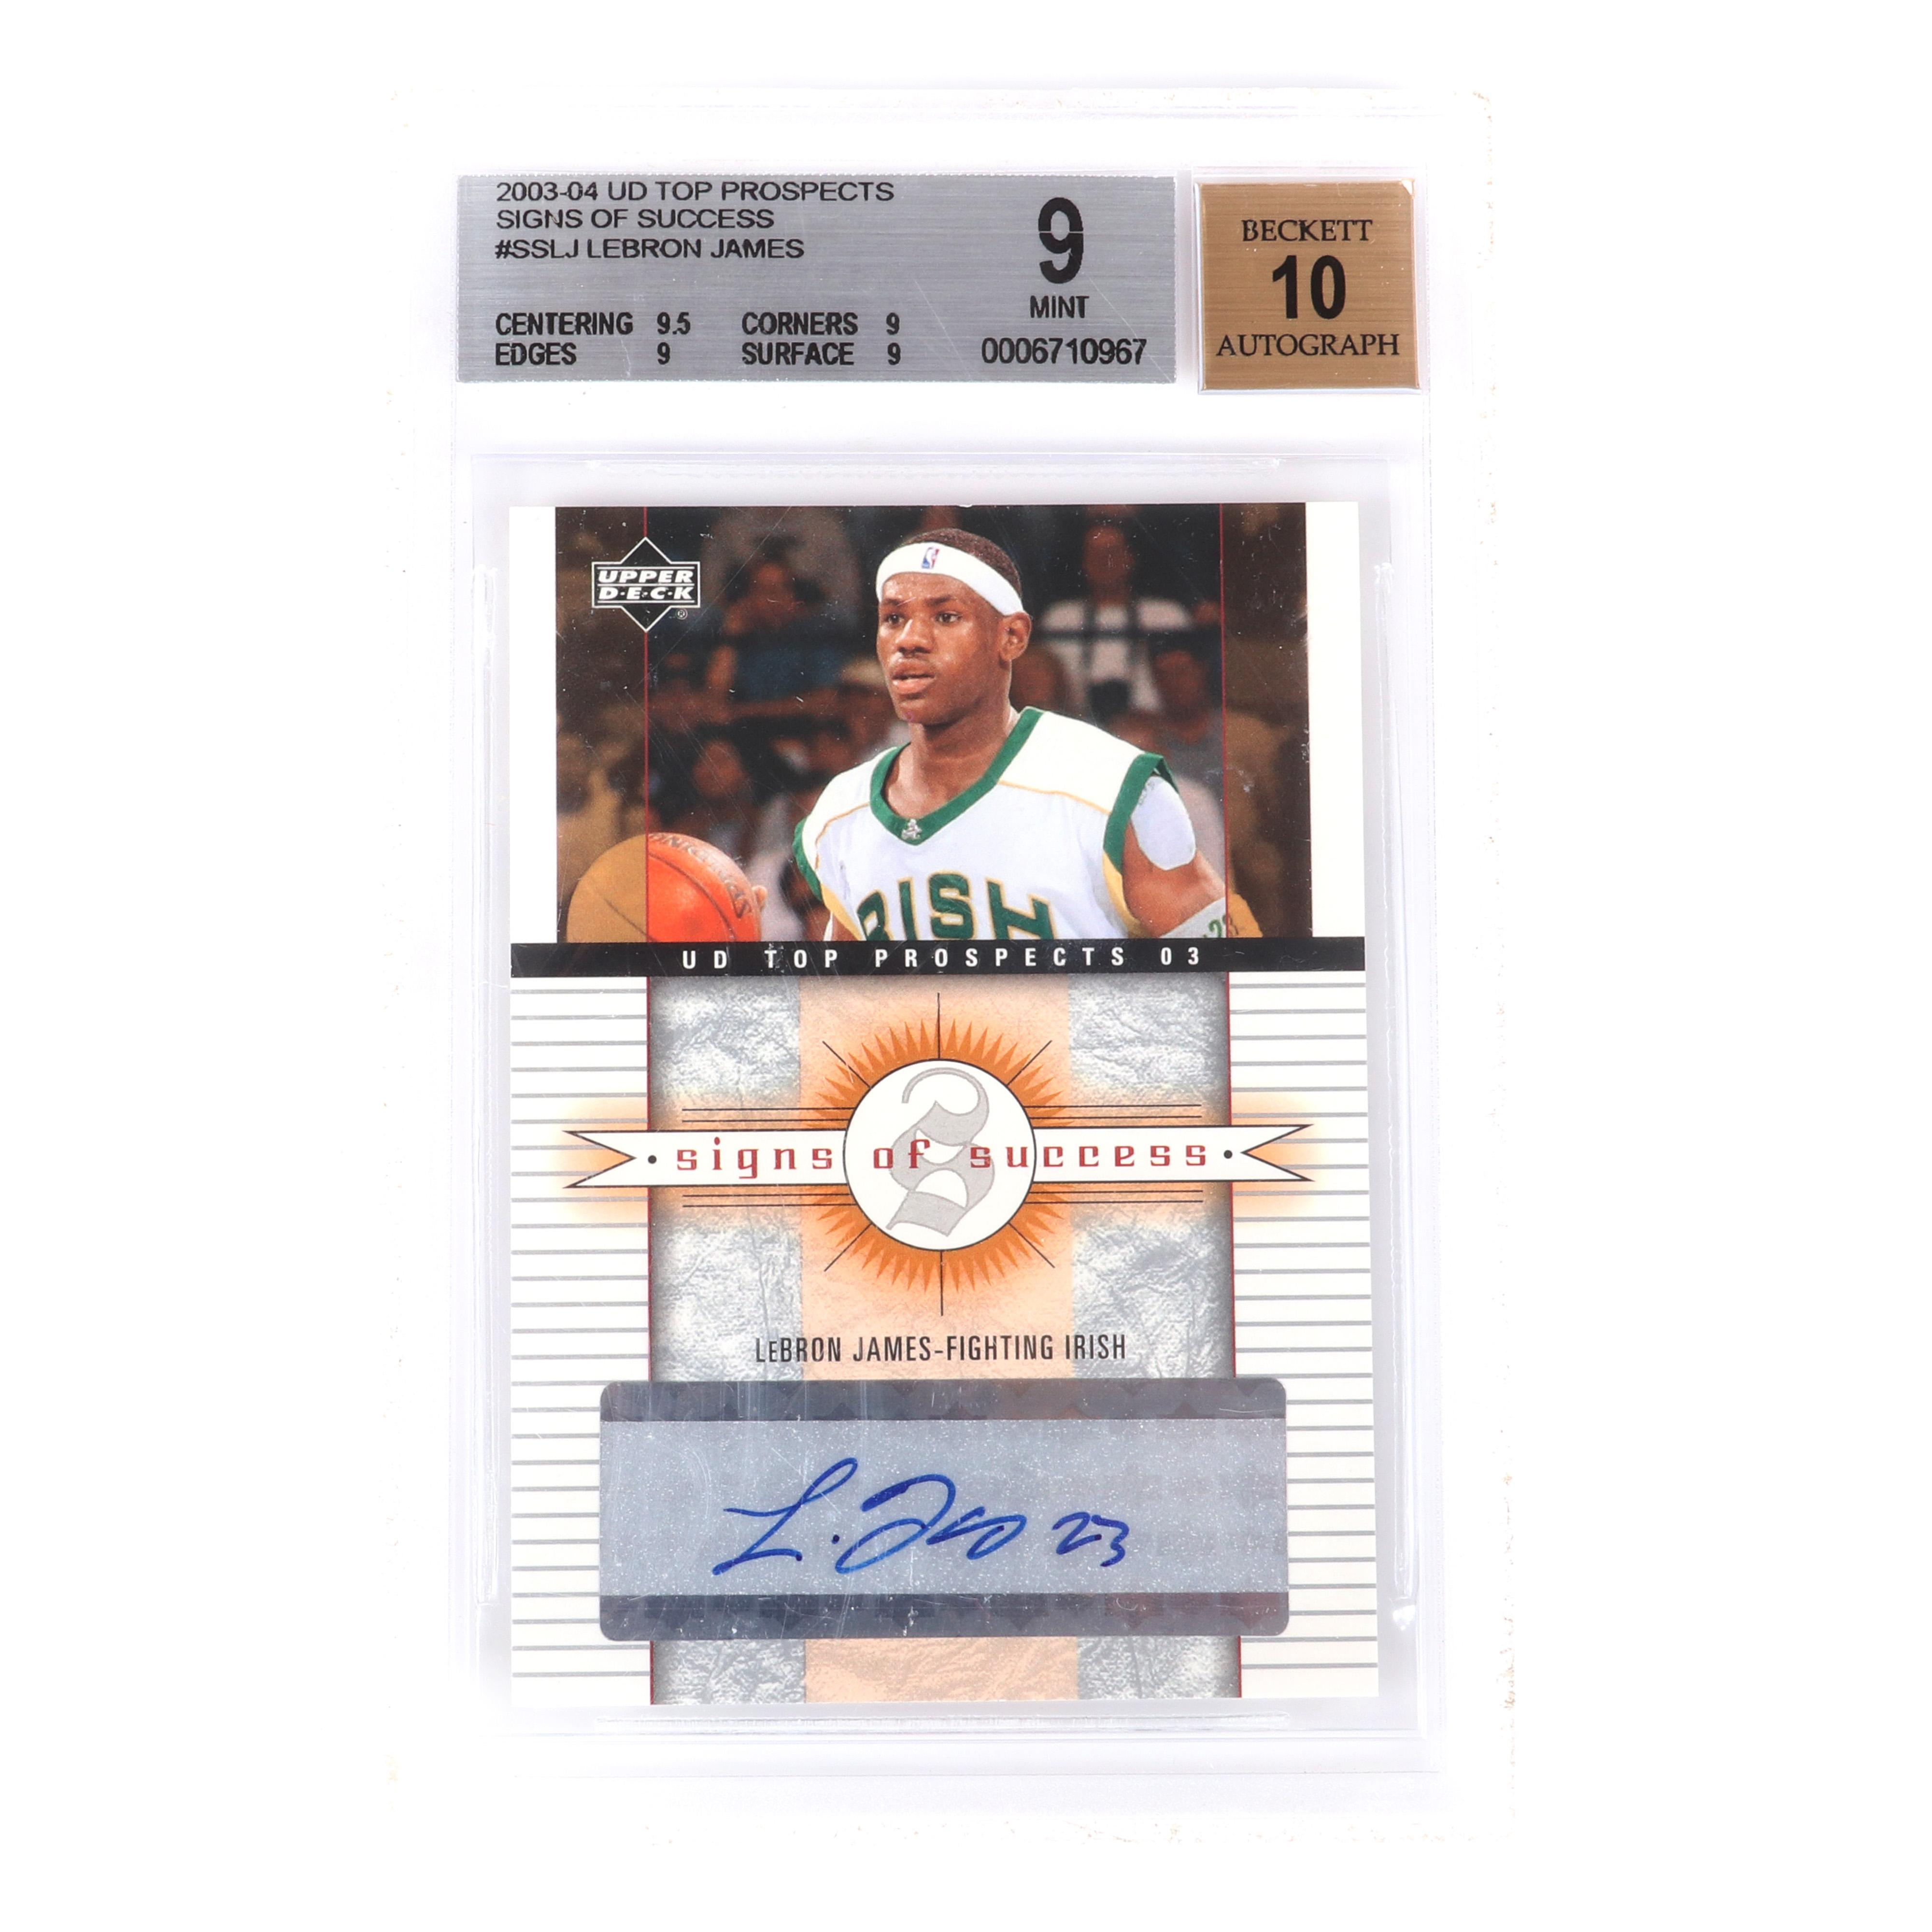 2003-04 Lebron James Rookie UD Top Prospects Signs of Success Rookie Autograph Card #SS-LJ BGS 9 Autograph 10.